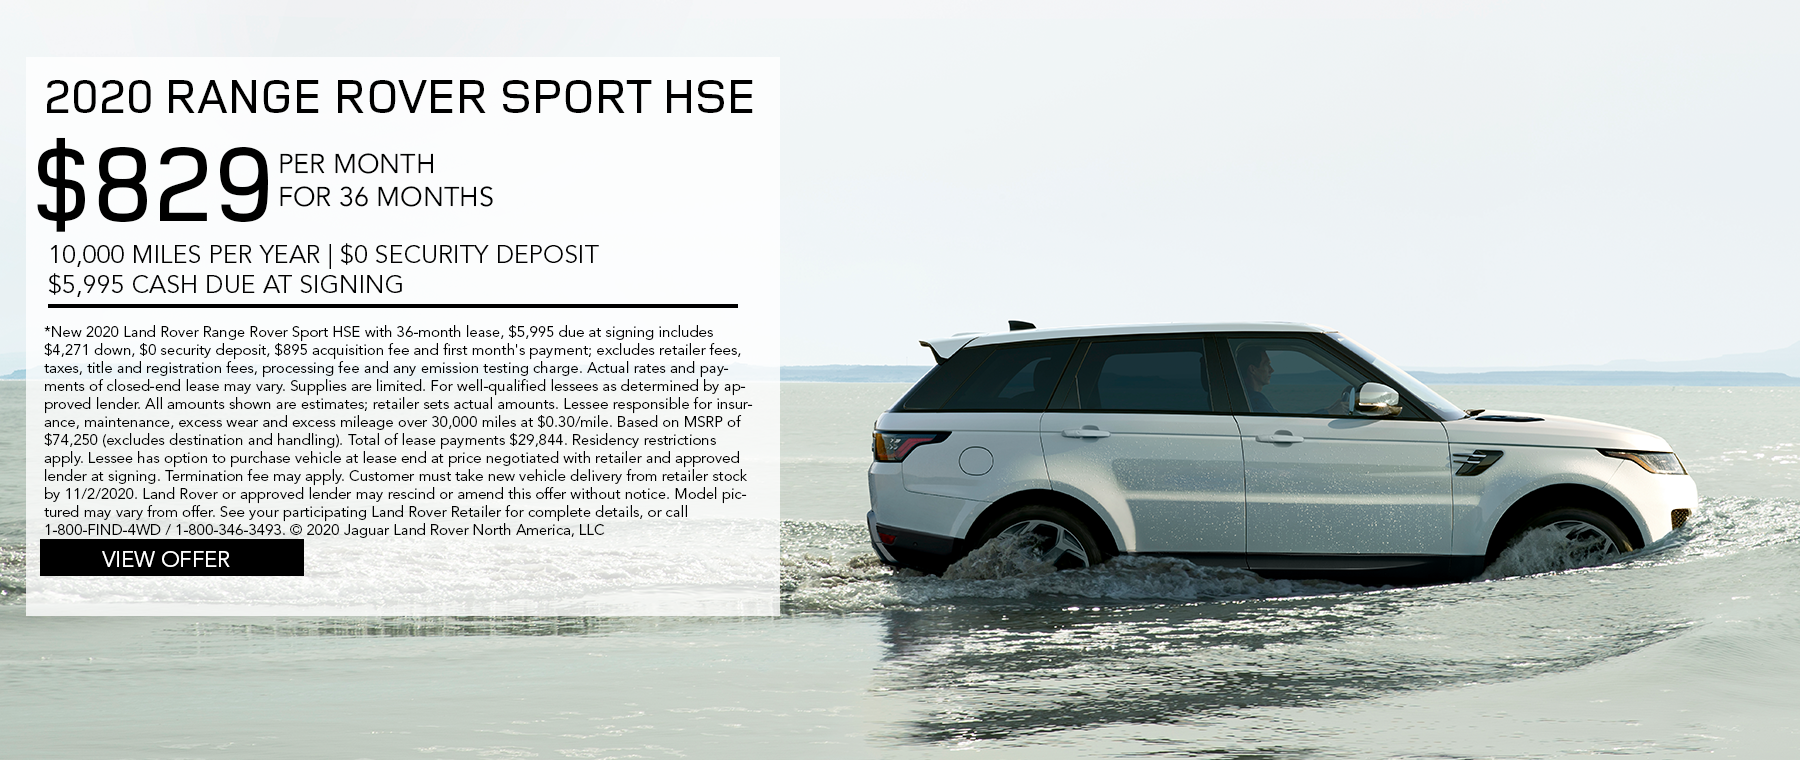 2020 RANGE ROVER SPORT HSE. $829 PER MONTH. 36 MONTH LEASE TERM. $5,995 CASH DUE AT SIGNING. $0 SECURITY DEPOSIT. 10,000 MILES PER YEAR. EXCLUDES RETAILER FEES, TAXES, TITLE AND REGISTRATION FEES, PROCESSING FEE AND ANY EMISSION TESTING CHARGE. ENDS 11/2/2020.